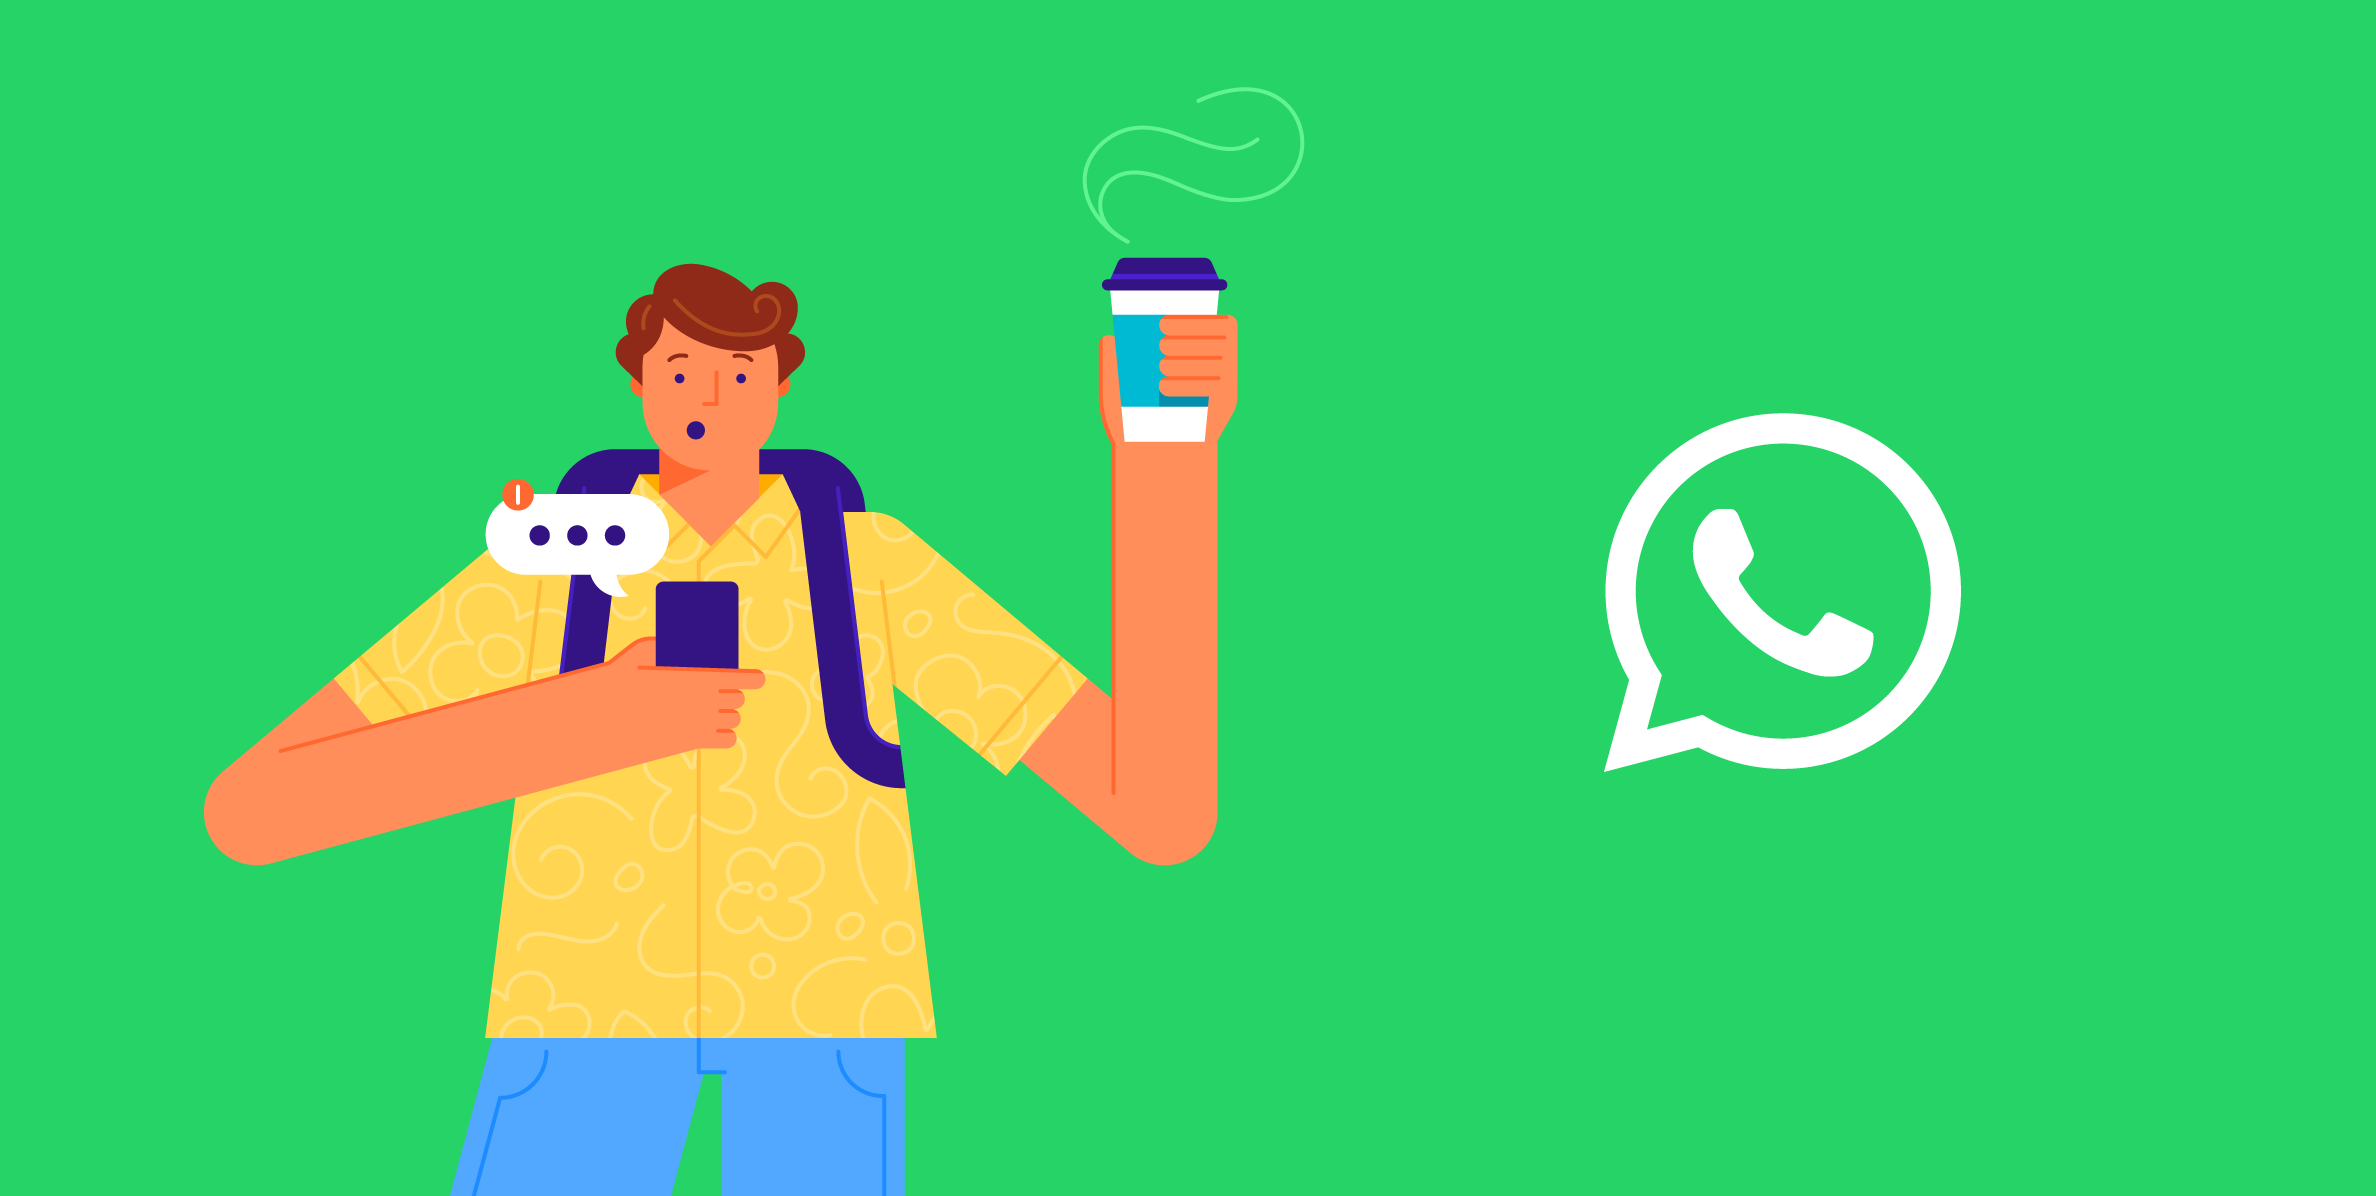 The wait is over: Now you can send non-transactional notifications on WhatsApp in Mexico and Indonesia